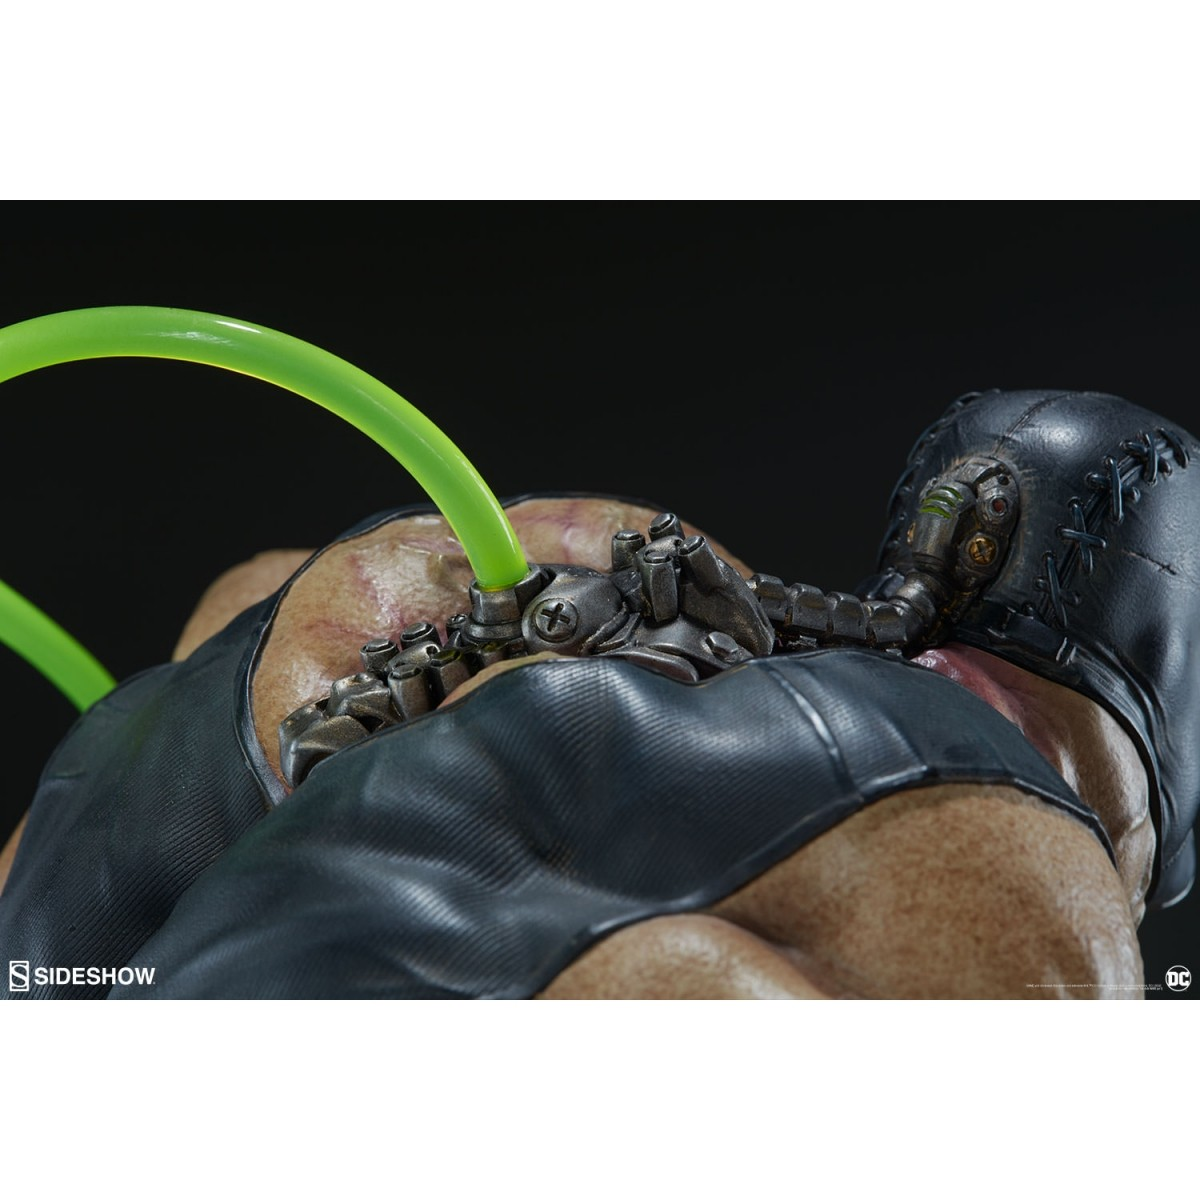 Sideshow BANE Premium Format Exclusive statue  - Movie Freaks Collectibles